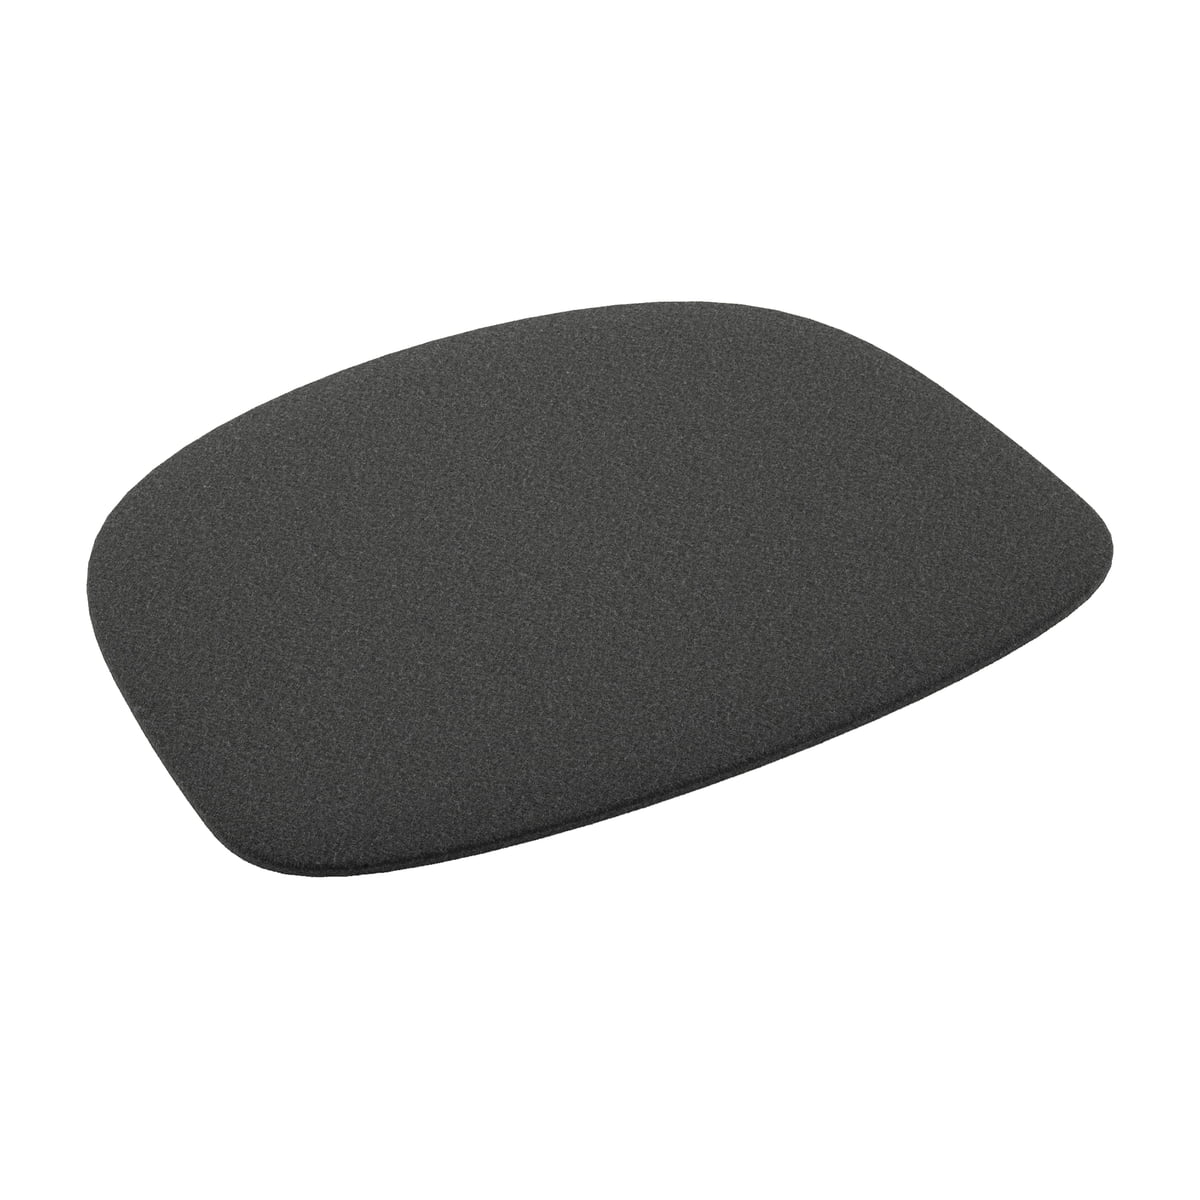 Fast Felt seat cushion for Forest Chair : Sitzkissen anthrazit frei from www.connox.com size 1200 x 1200 jpeg 324kB